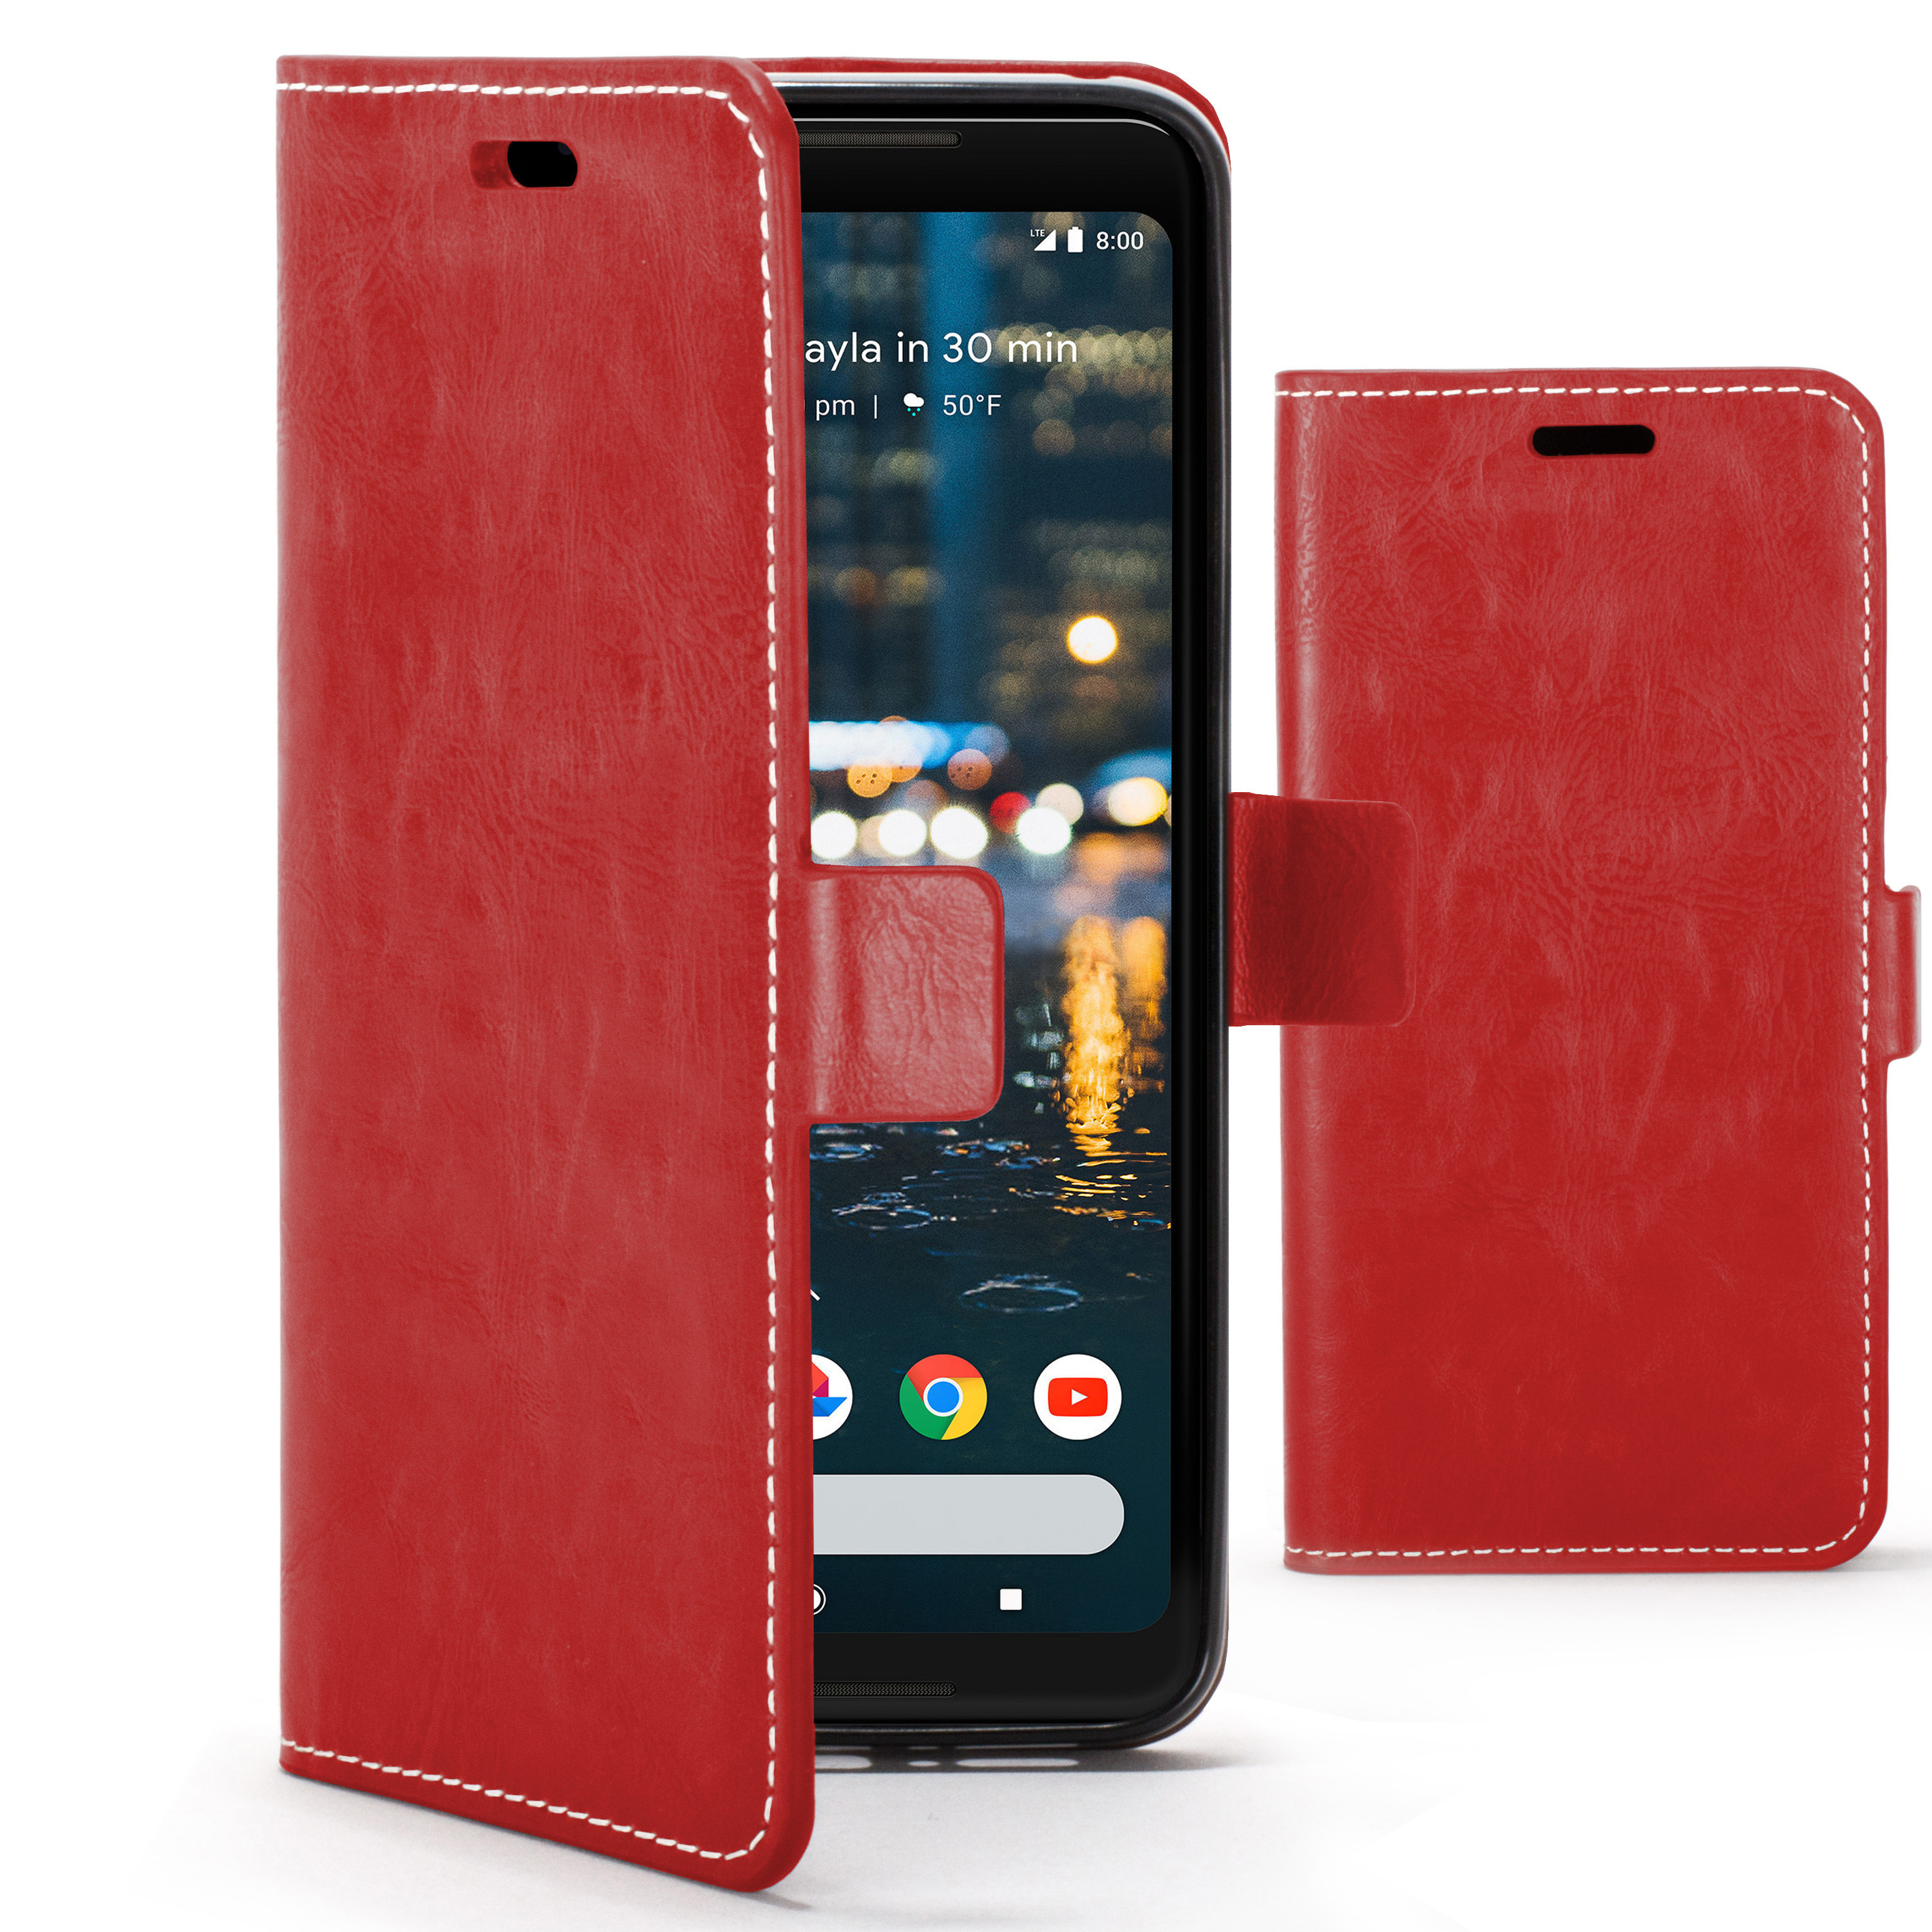 buy popular a57b6 ed373 Details about Google Pixel 2 XL Case Handmade PU Leather Premium Flip Cover  Wallet Red